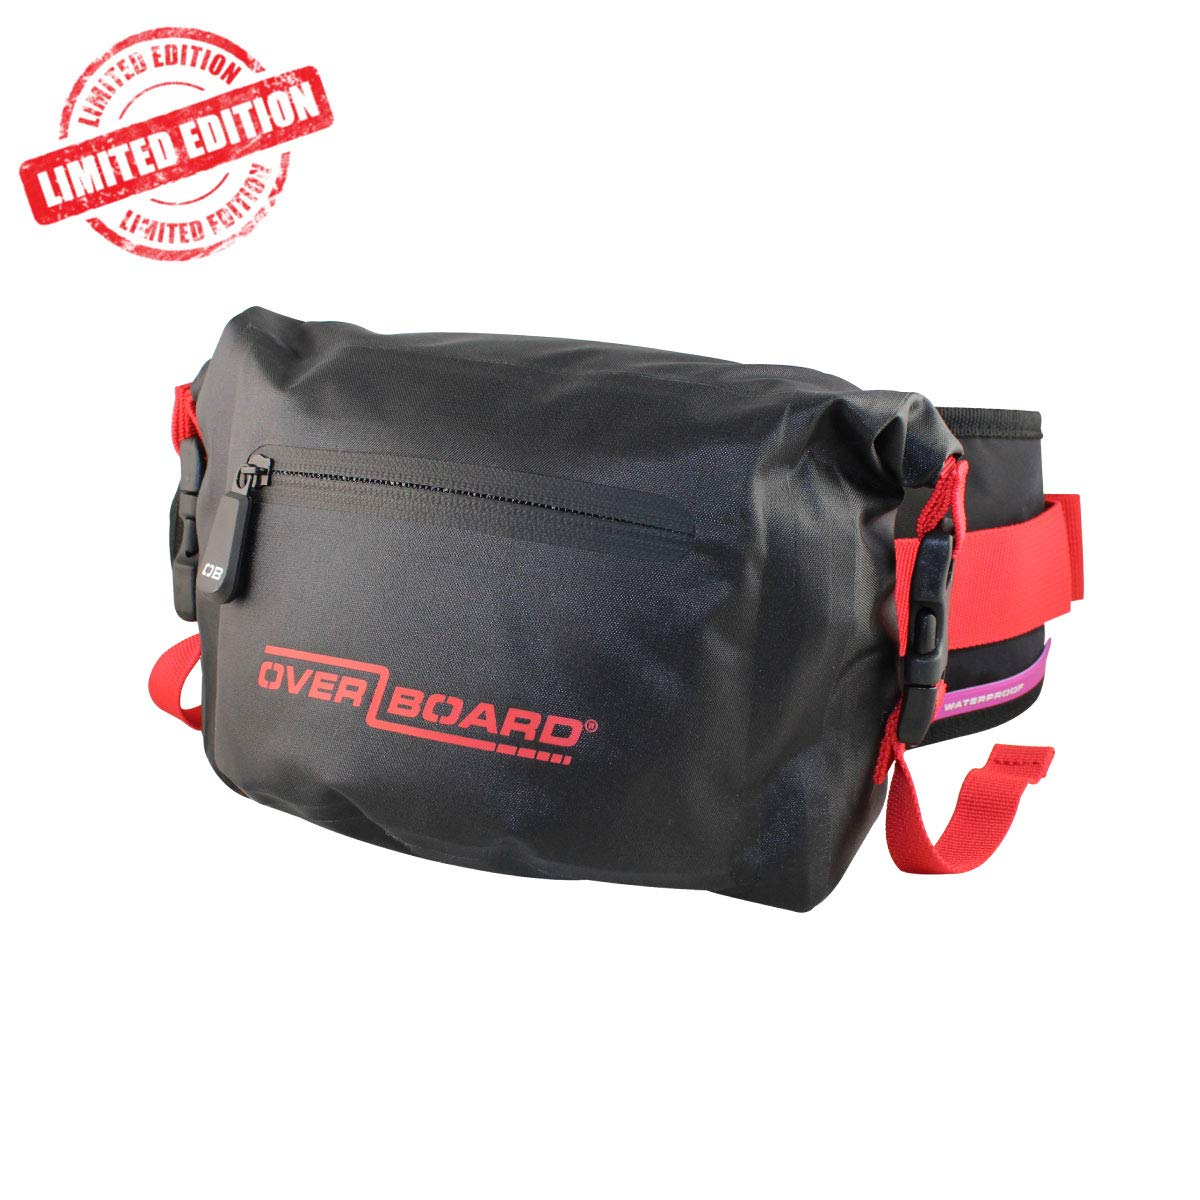 Overboard Pro-Light 100% Waterproof Waist Pack Bag